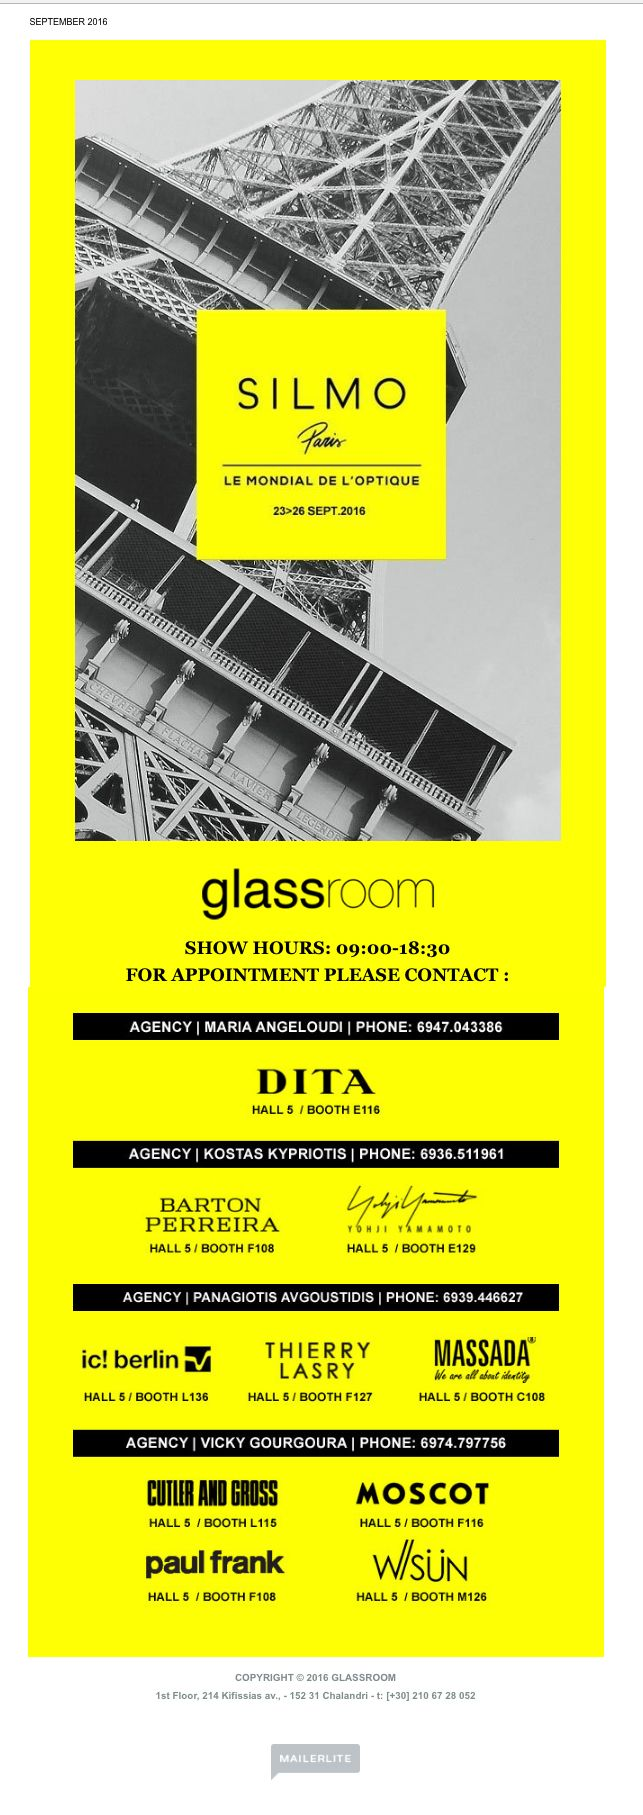 Glassroom Newsletter design (Silmo 2016 )